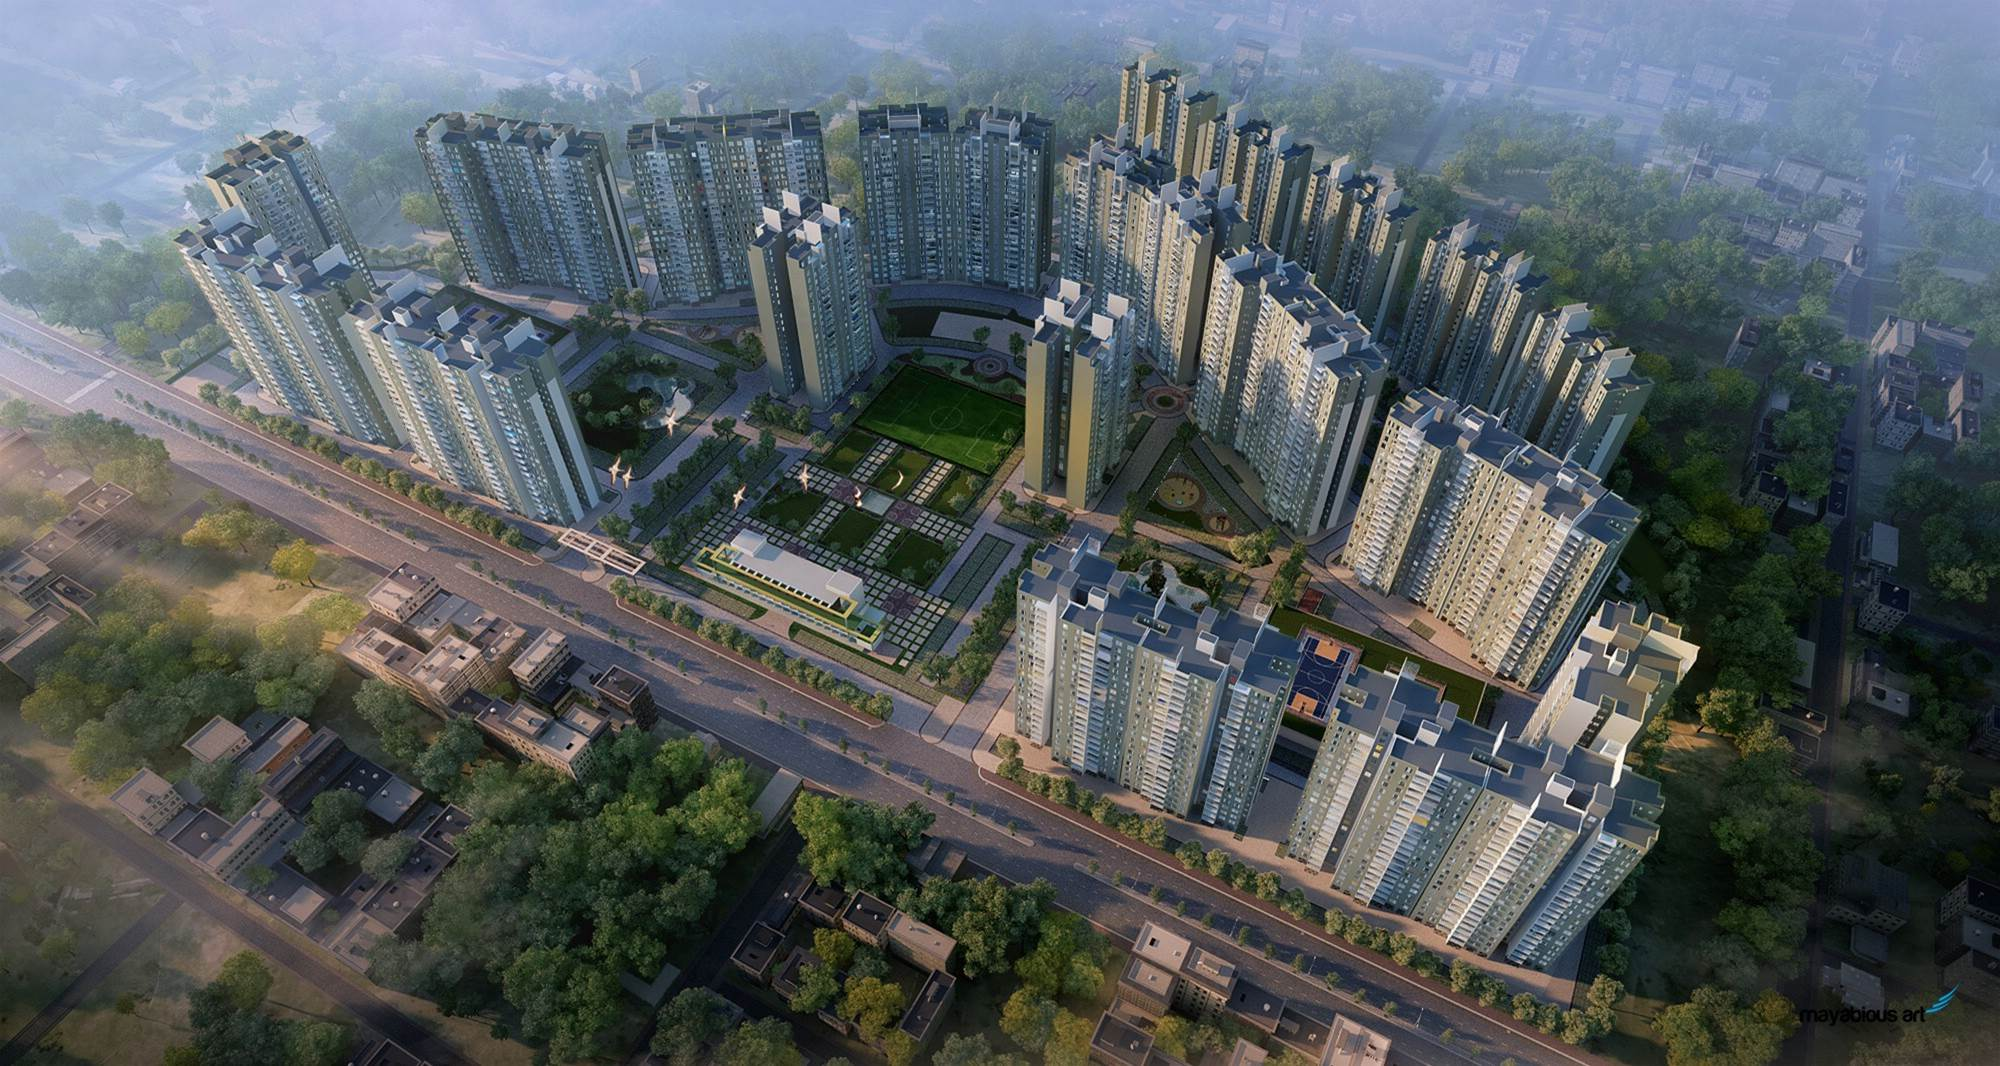 Kolkata West International City